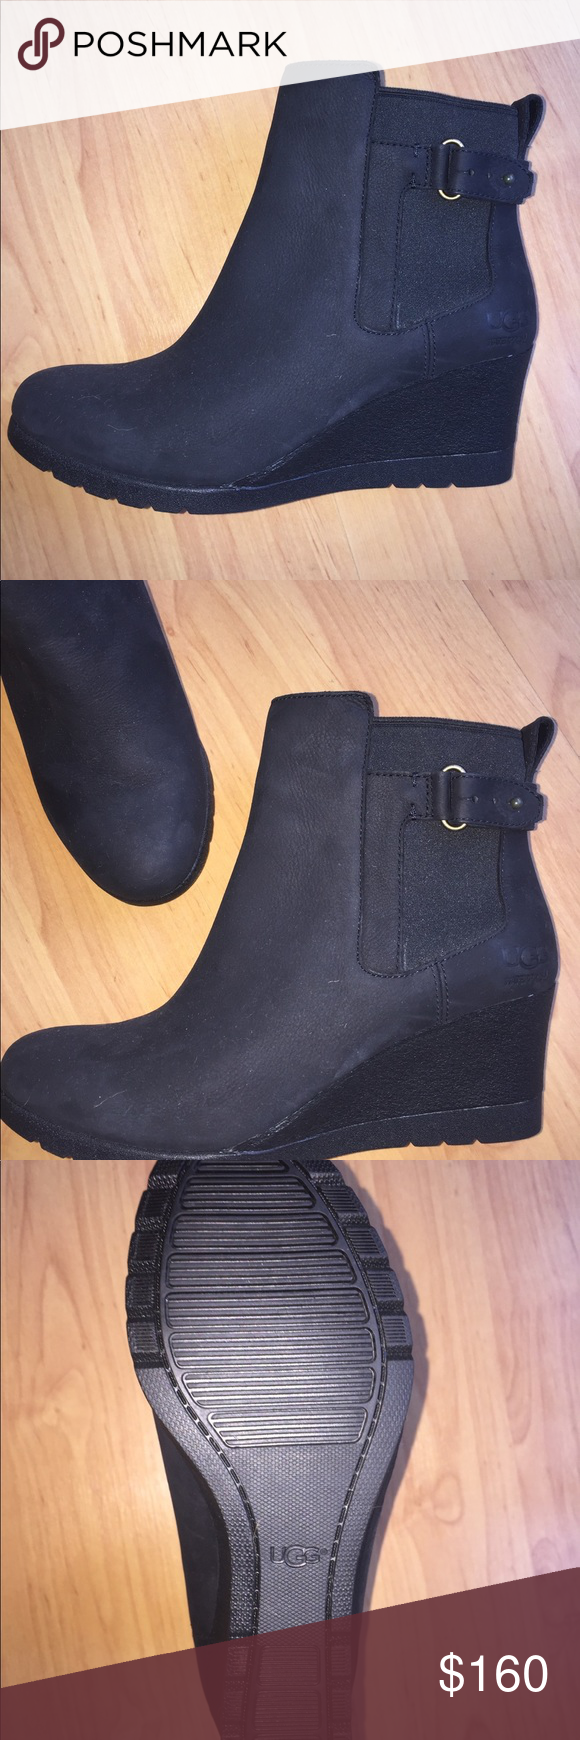 cadf166fb77 NWOT UGG Indra Waterproof Cold Weather Wedge Boots Out of stock on ...